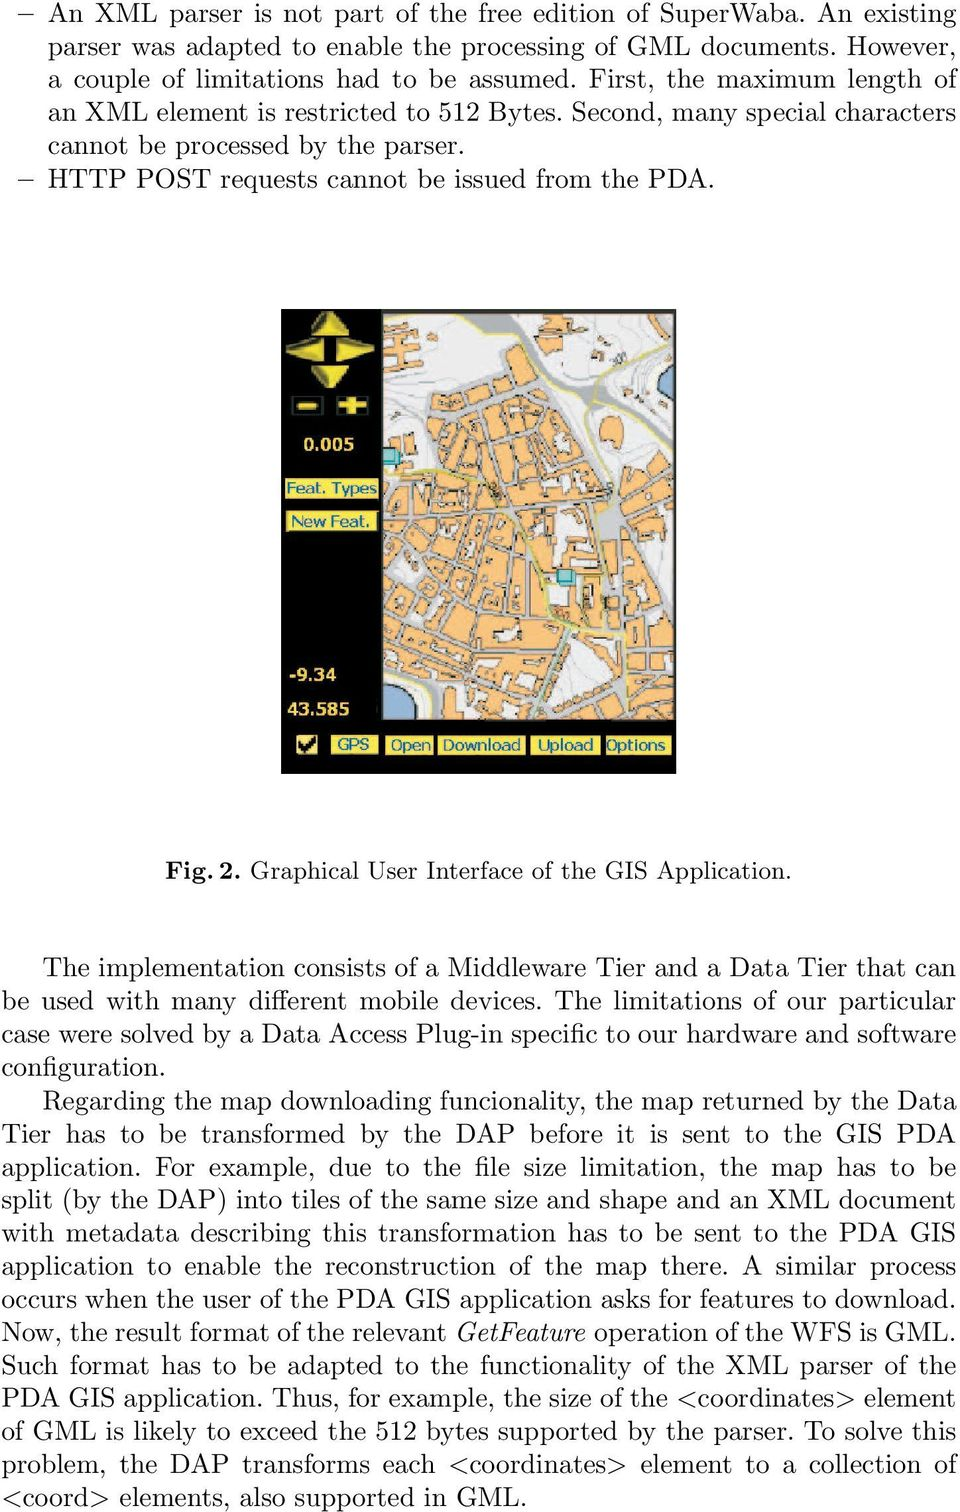 Graphical User Interface of the GIS Application. The implementation consists of a Middleware Tier and a Data Tier that can be used with many different mobile devices.